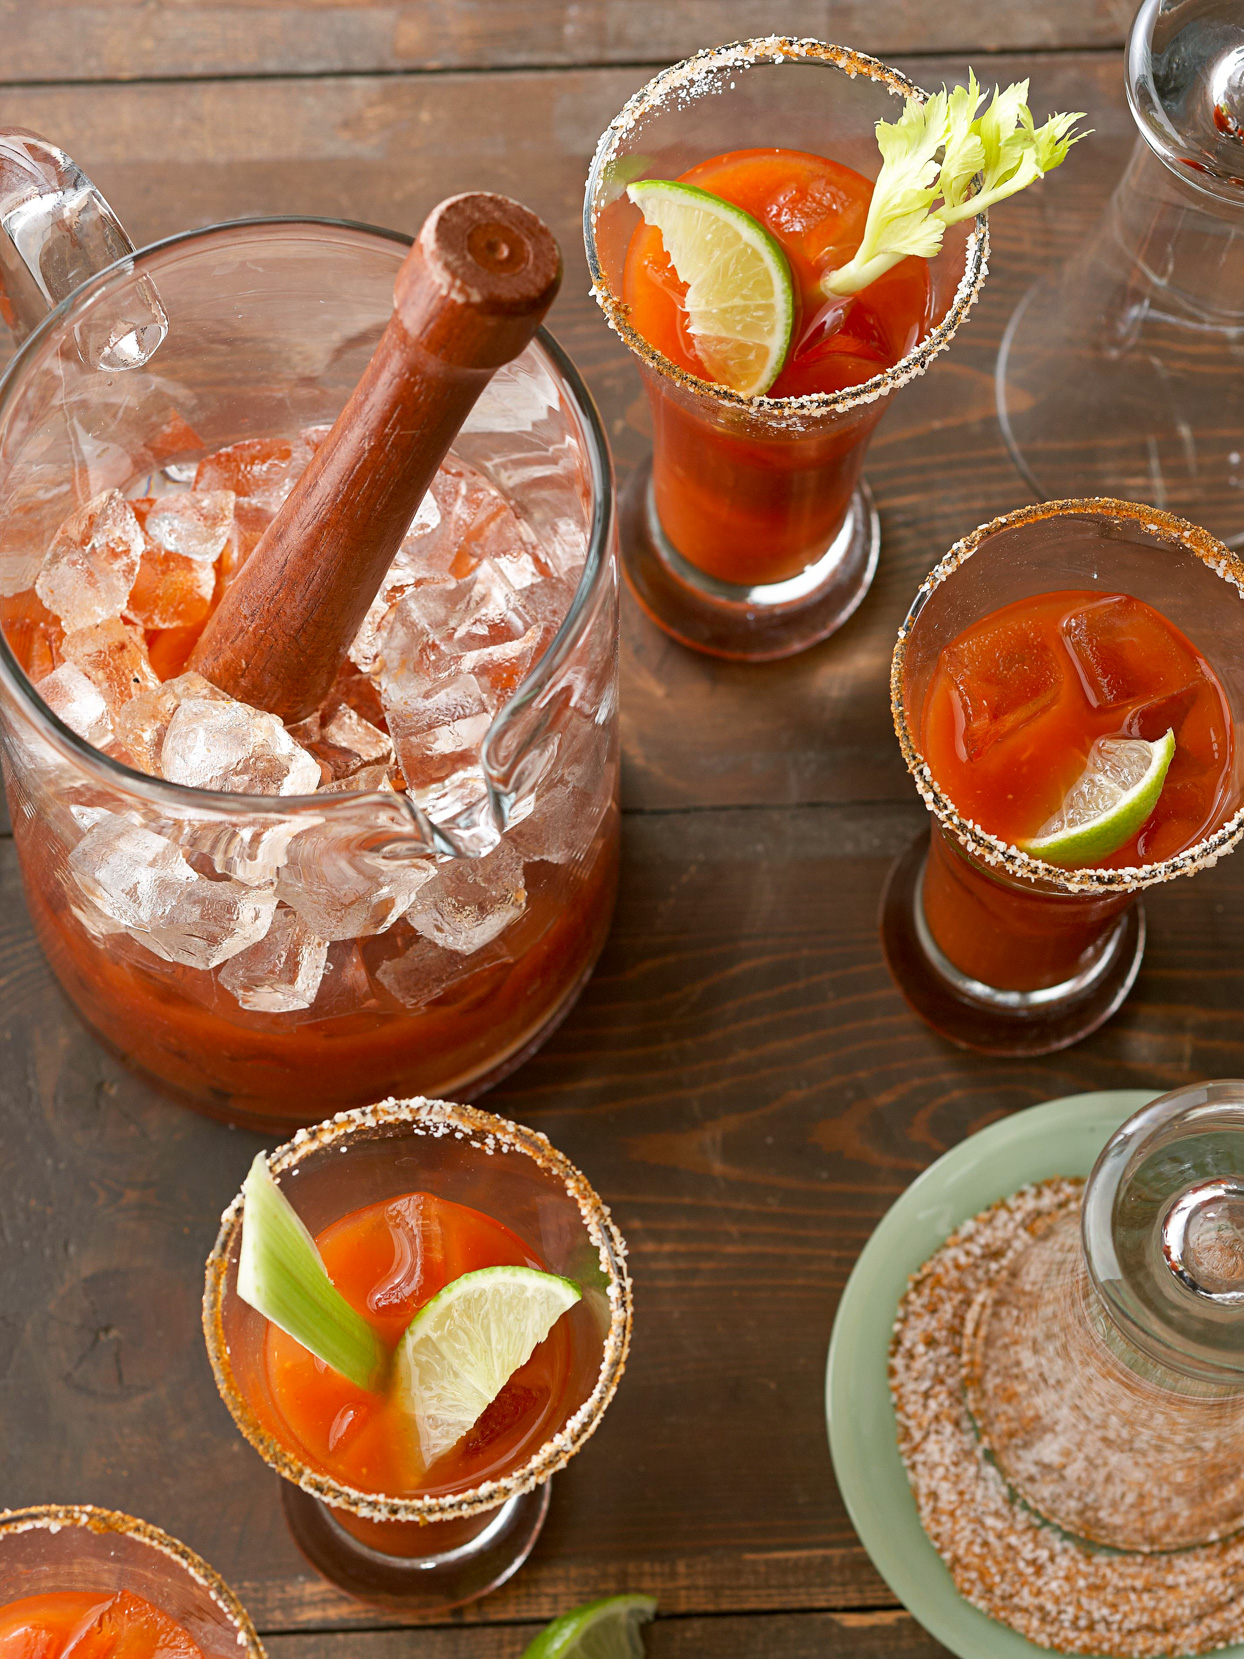 Spicy Beer Mary